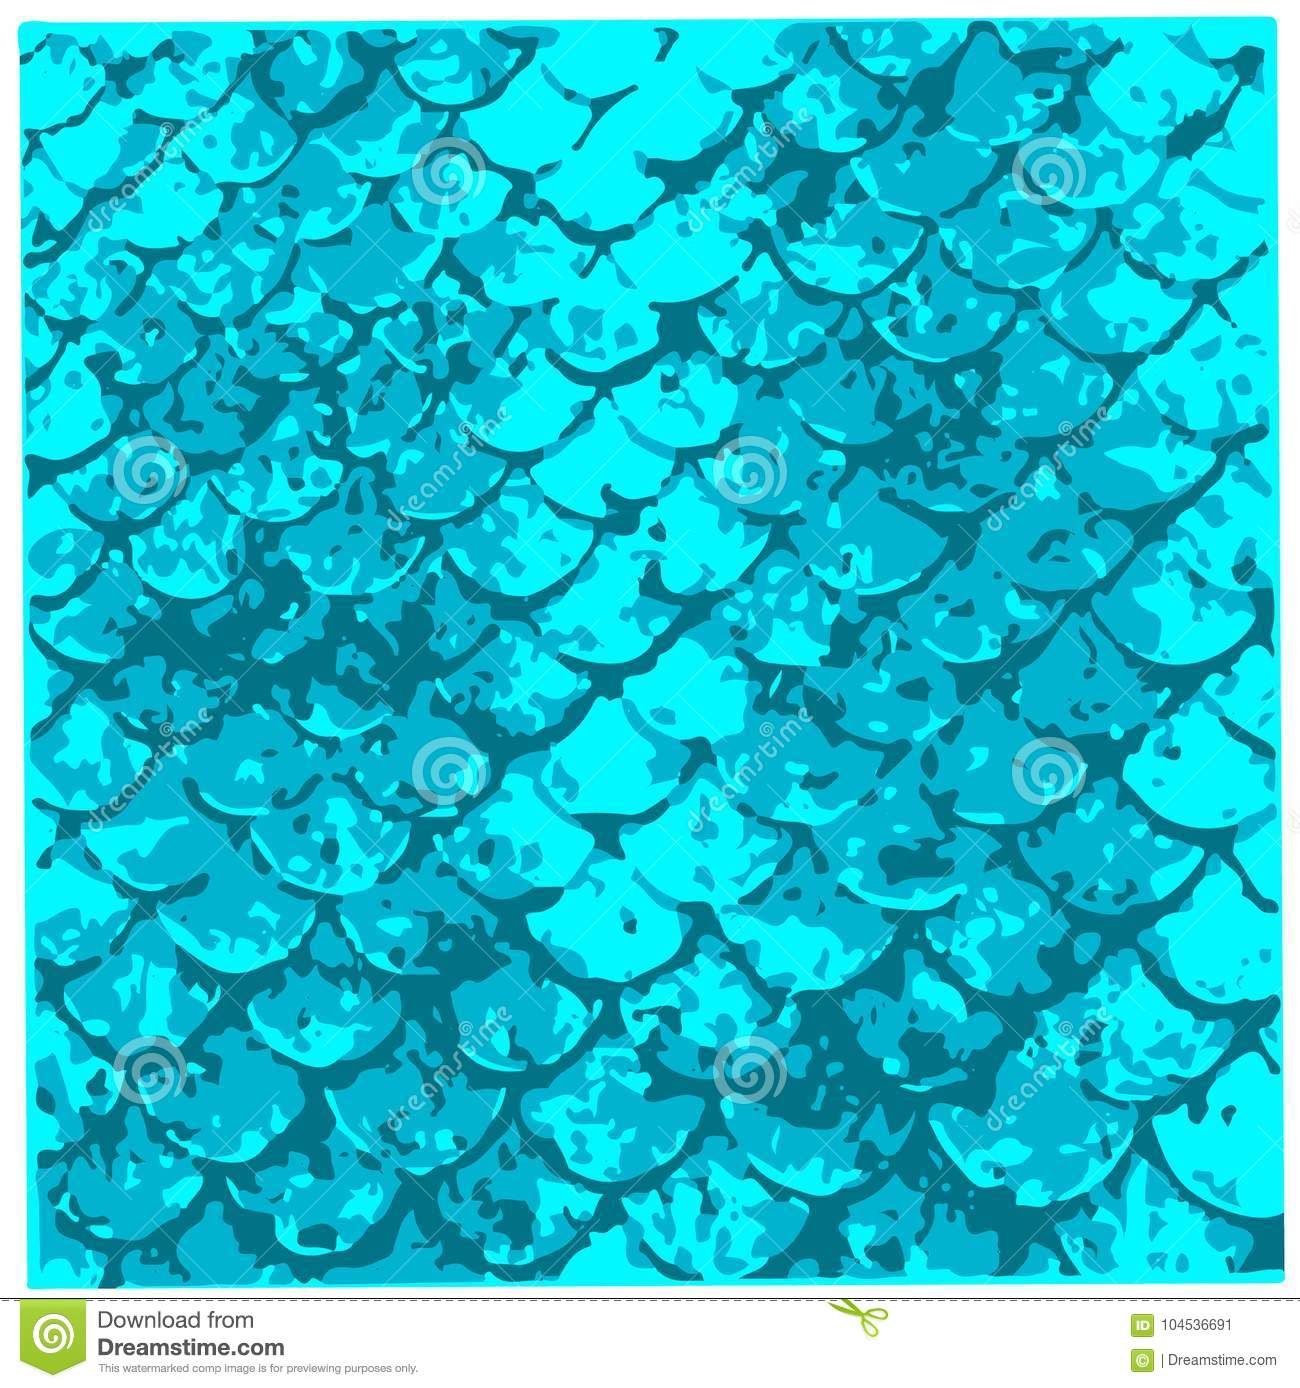 A sample of fish scales pattern,can be used for textile design, swimwear, wallpaper, poster. Mermaid tail.